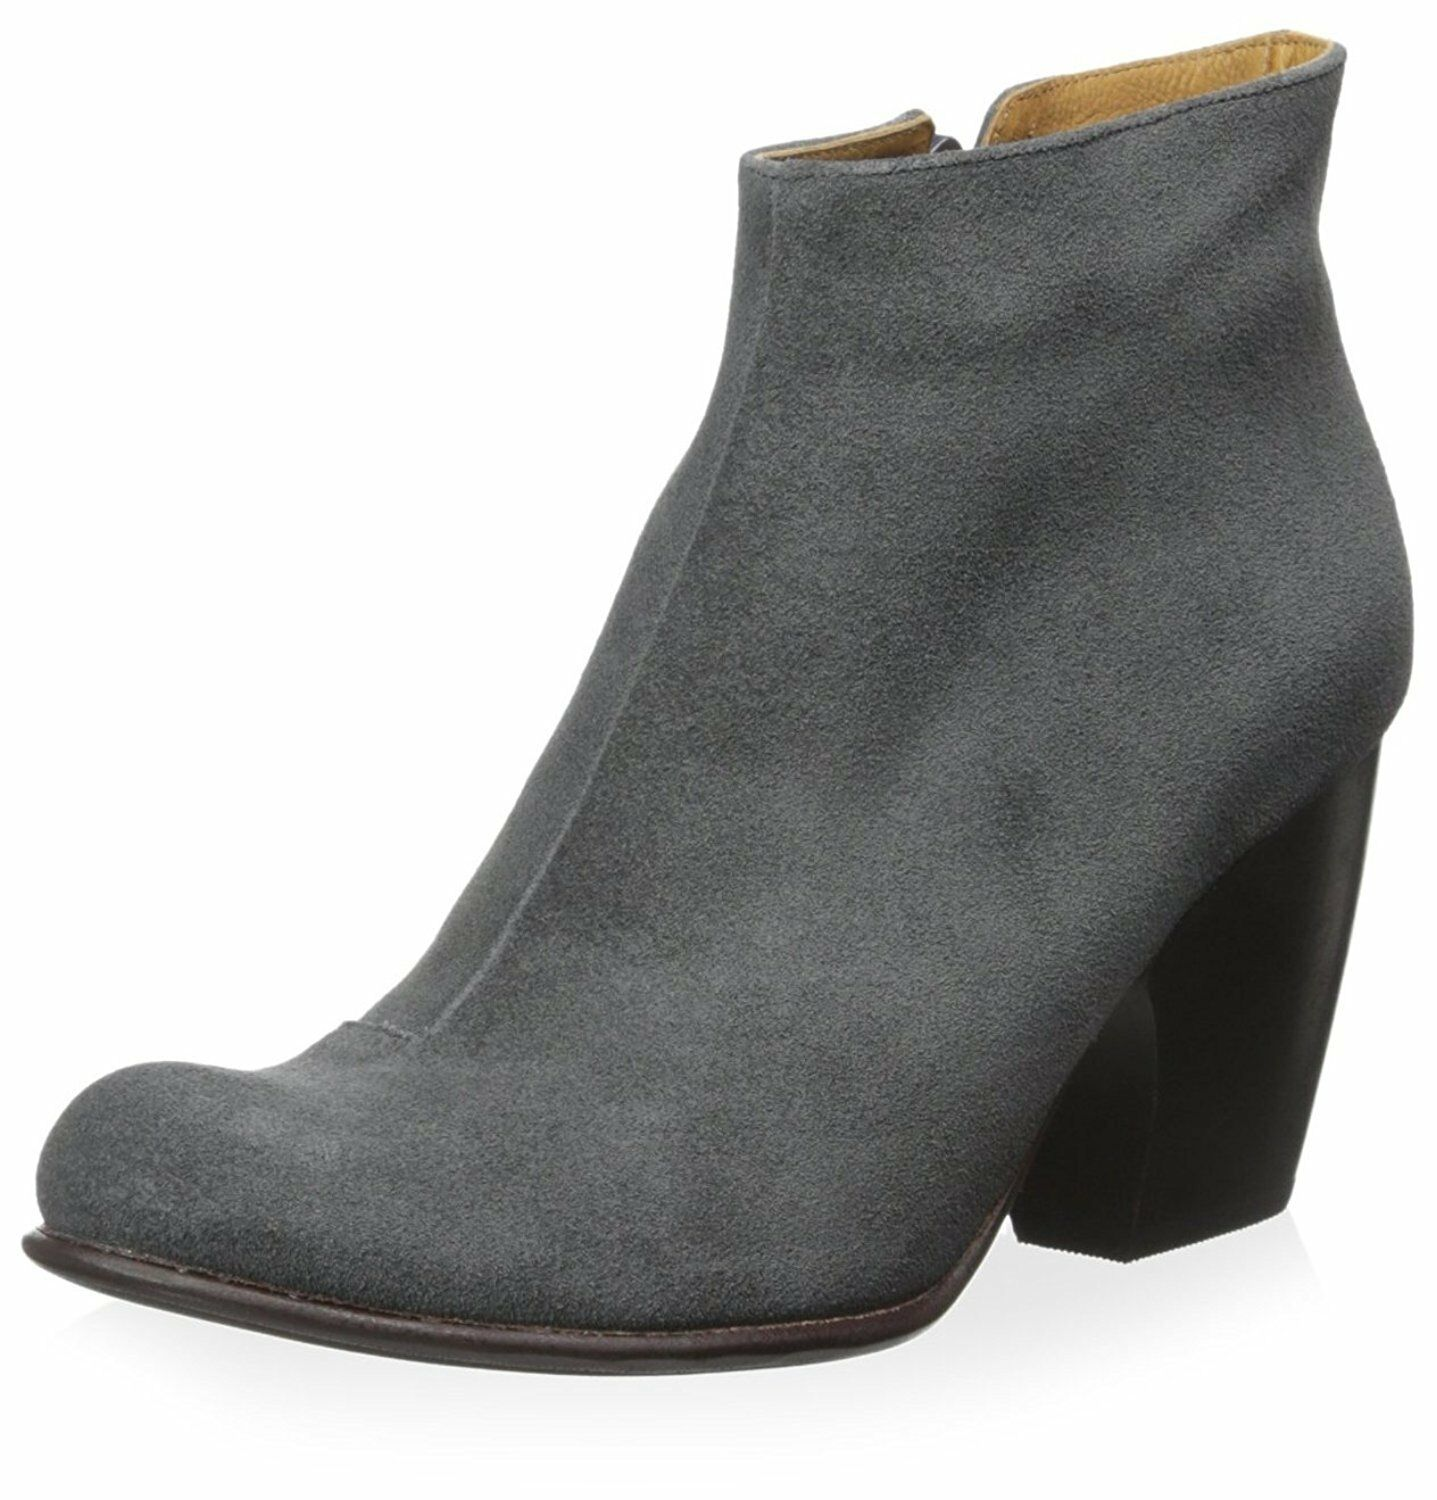 COCLICO SHOES VERNON BOOTIES SOFTY GRAY SUEDE ANKLE BOOTS SIDE ZIP NIB 37 415